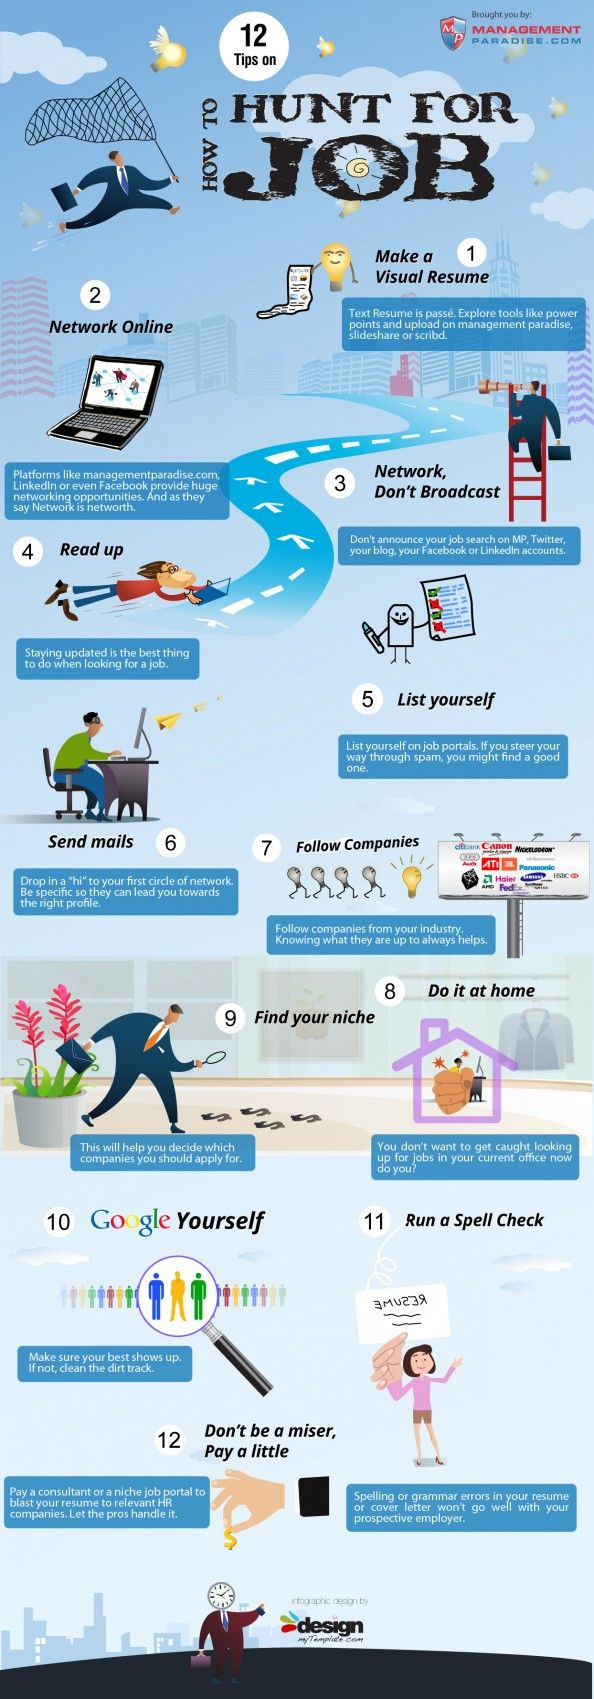 17 best images about job search resume interviewing tips on 12 tips on how to hunt for jobs infographic